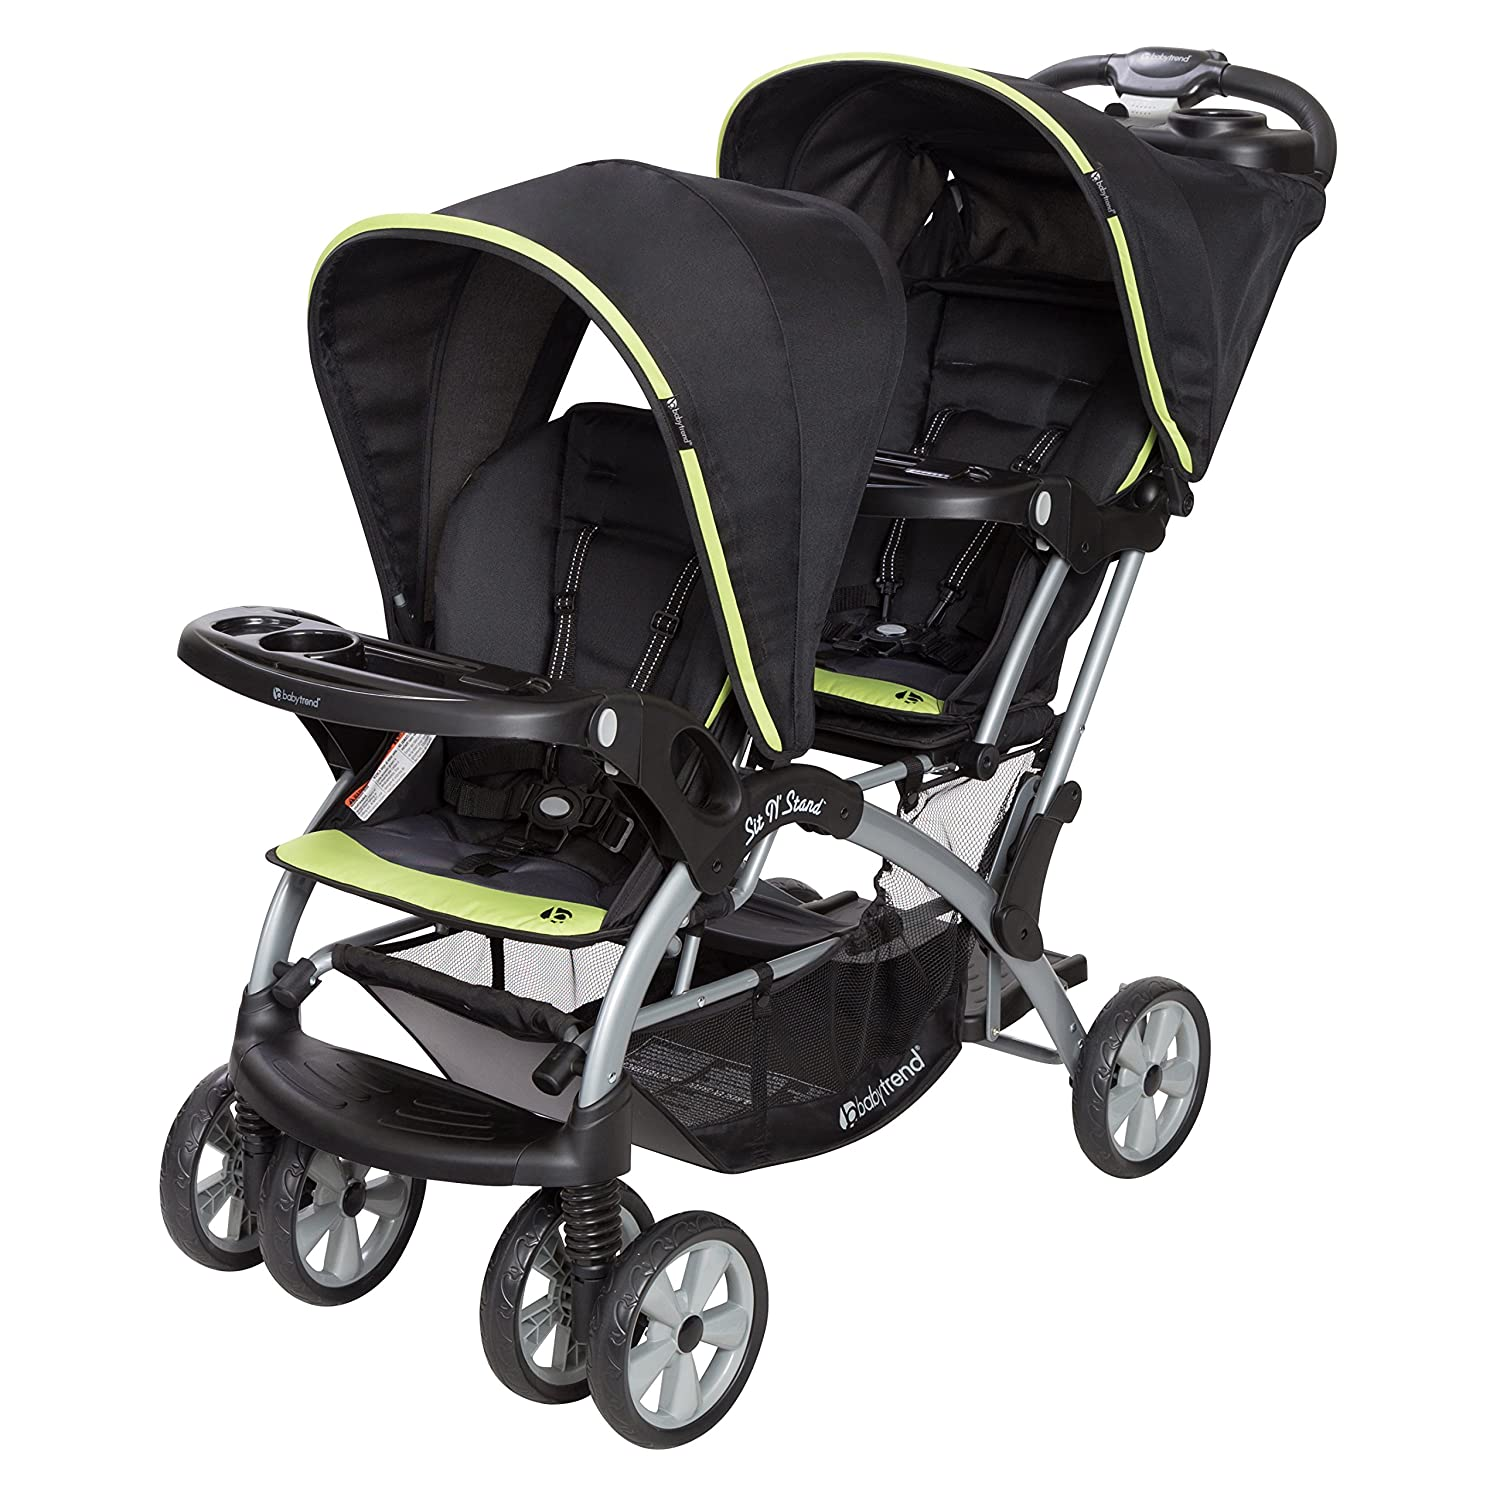 Amazon.com: Baby Trend Sit n Stand - Cochecito doble: Baby